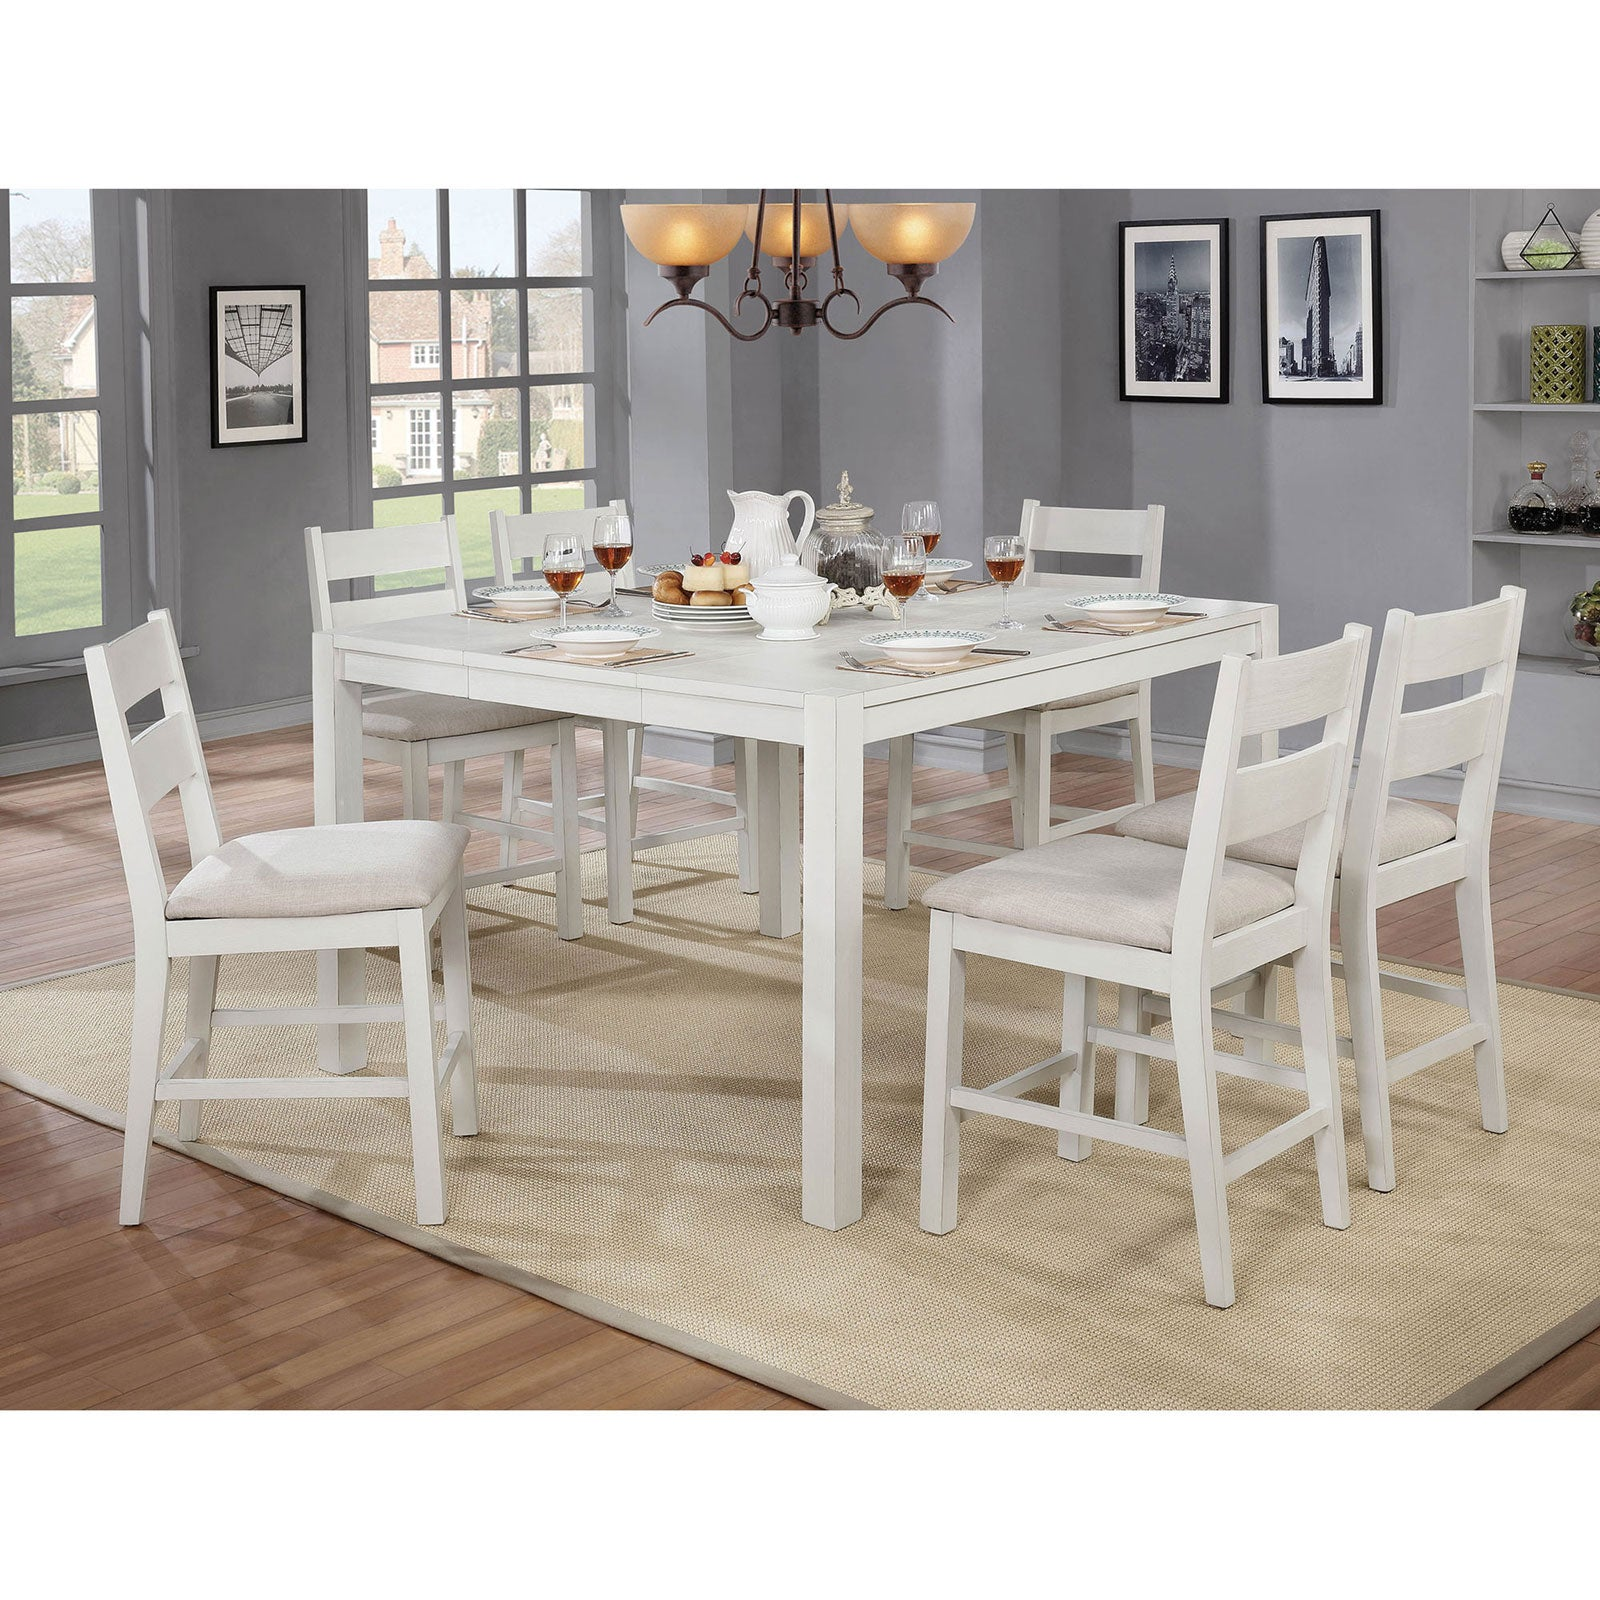 Glenfield 7 Pc. Dining Table Set - InteriorDesignsToGo.com